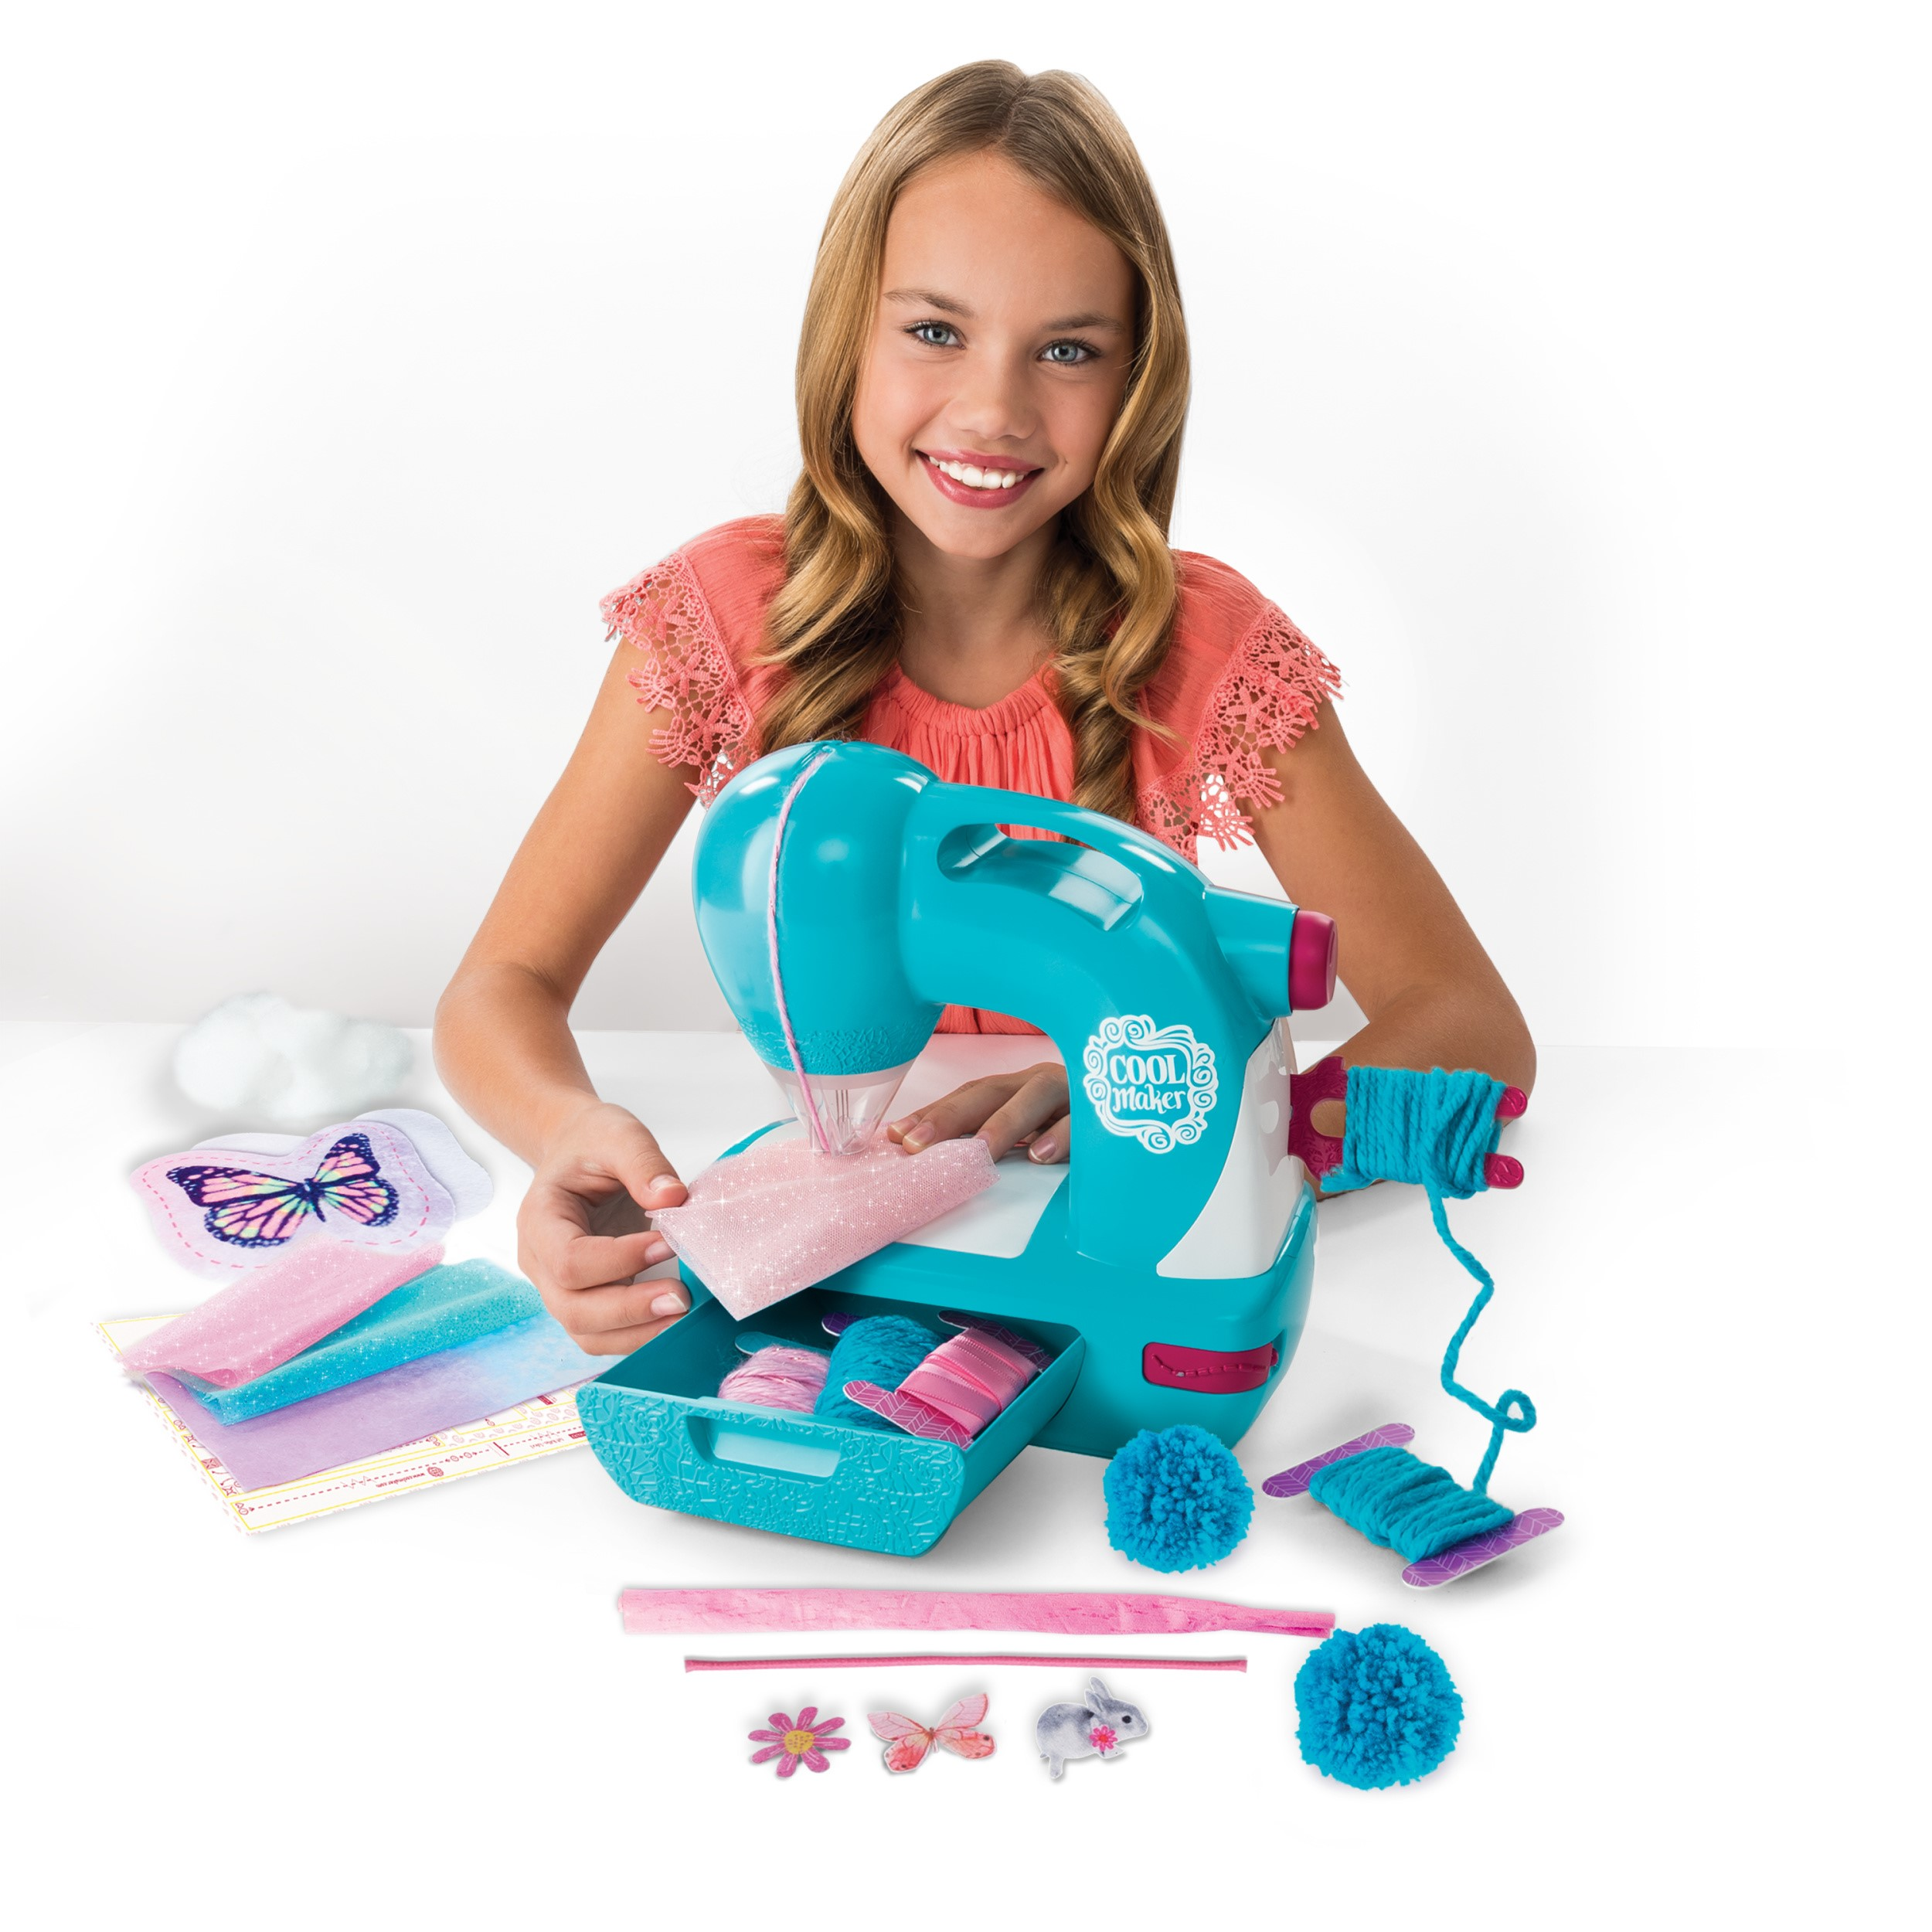 Cool Maker Sew N' Style Kids Sewing Machine with Pom Pom Maker Attachment (Edition May Vary)